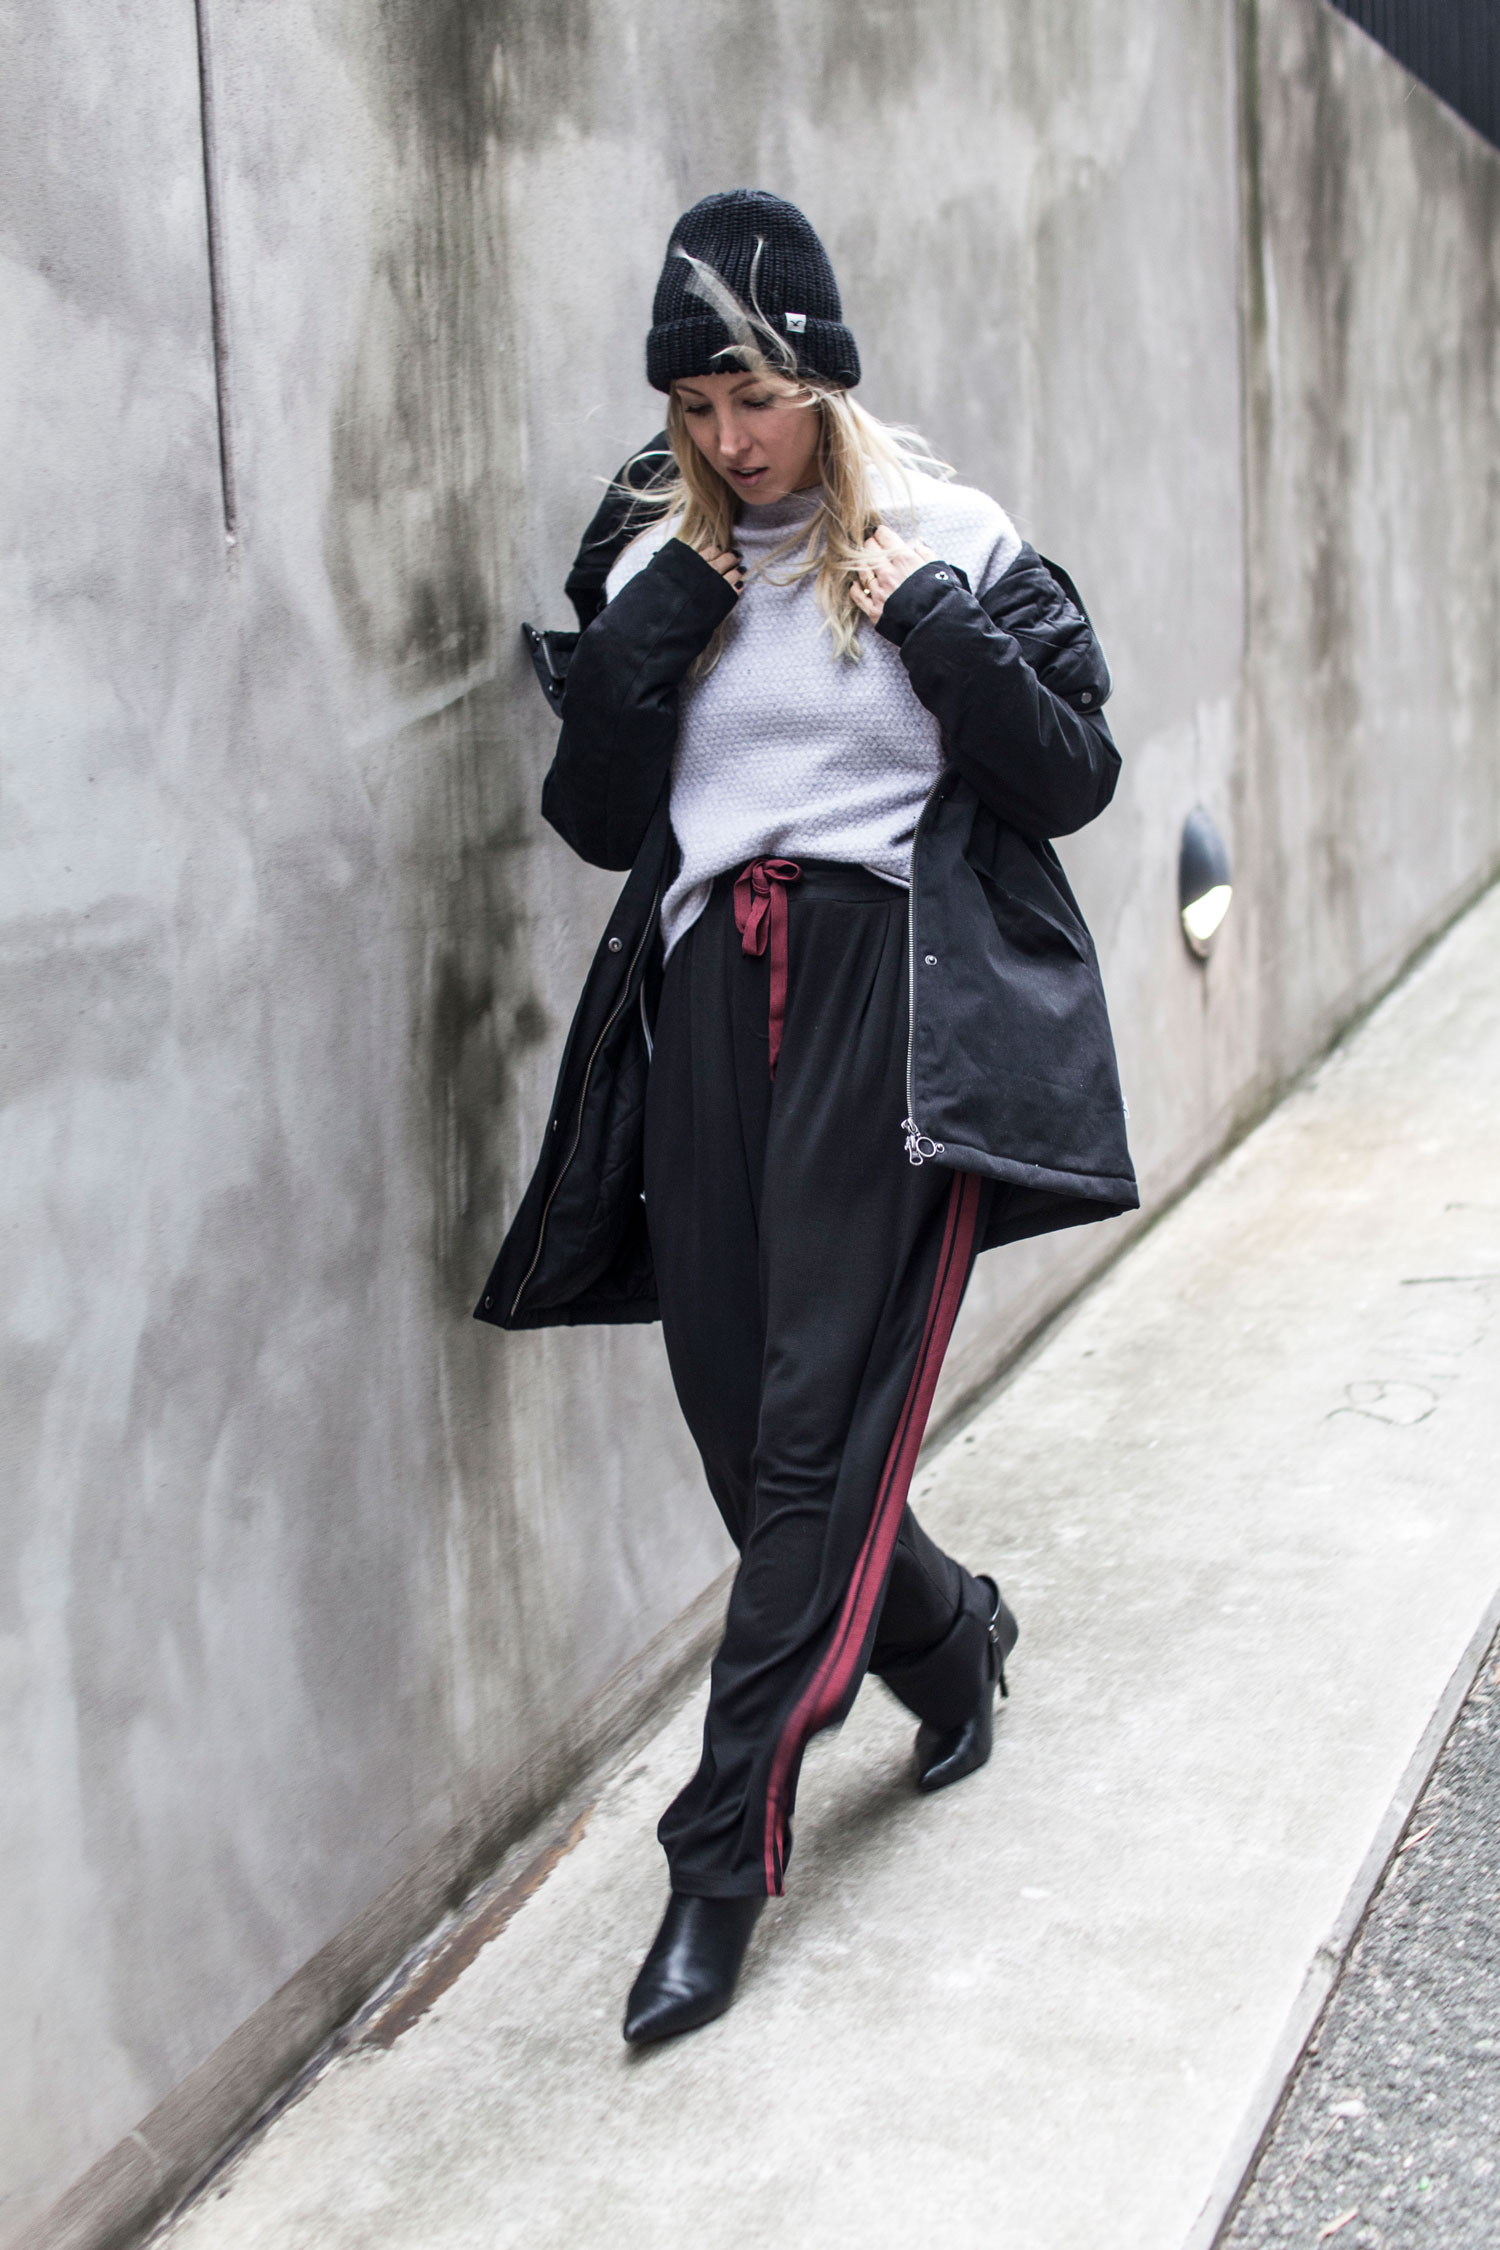 Windige Zeiten, windy. Limeme.ch, Cleptomanicx, Maas Natur, Hessnatur, Parka, Jacken Winter, 2017, Fair Fashion, Outfit, Inspiration, Look, lotd, ootd, Eco, Ethical, Green, Sustainable, Fashion, Blog, stryleTZ